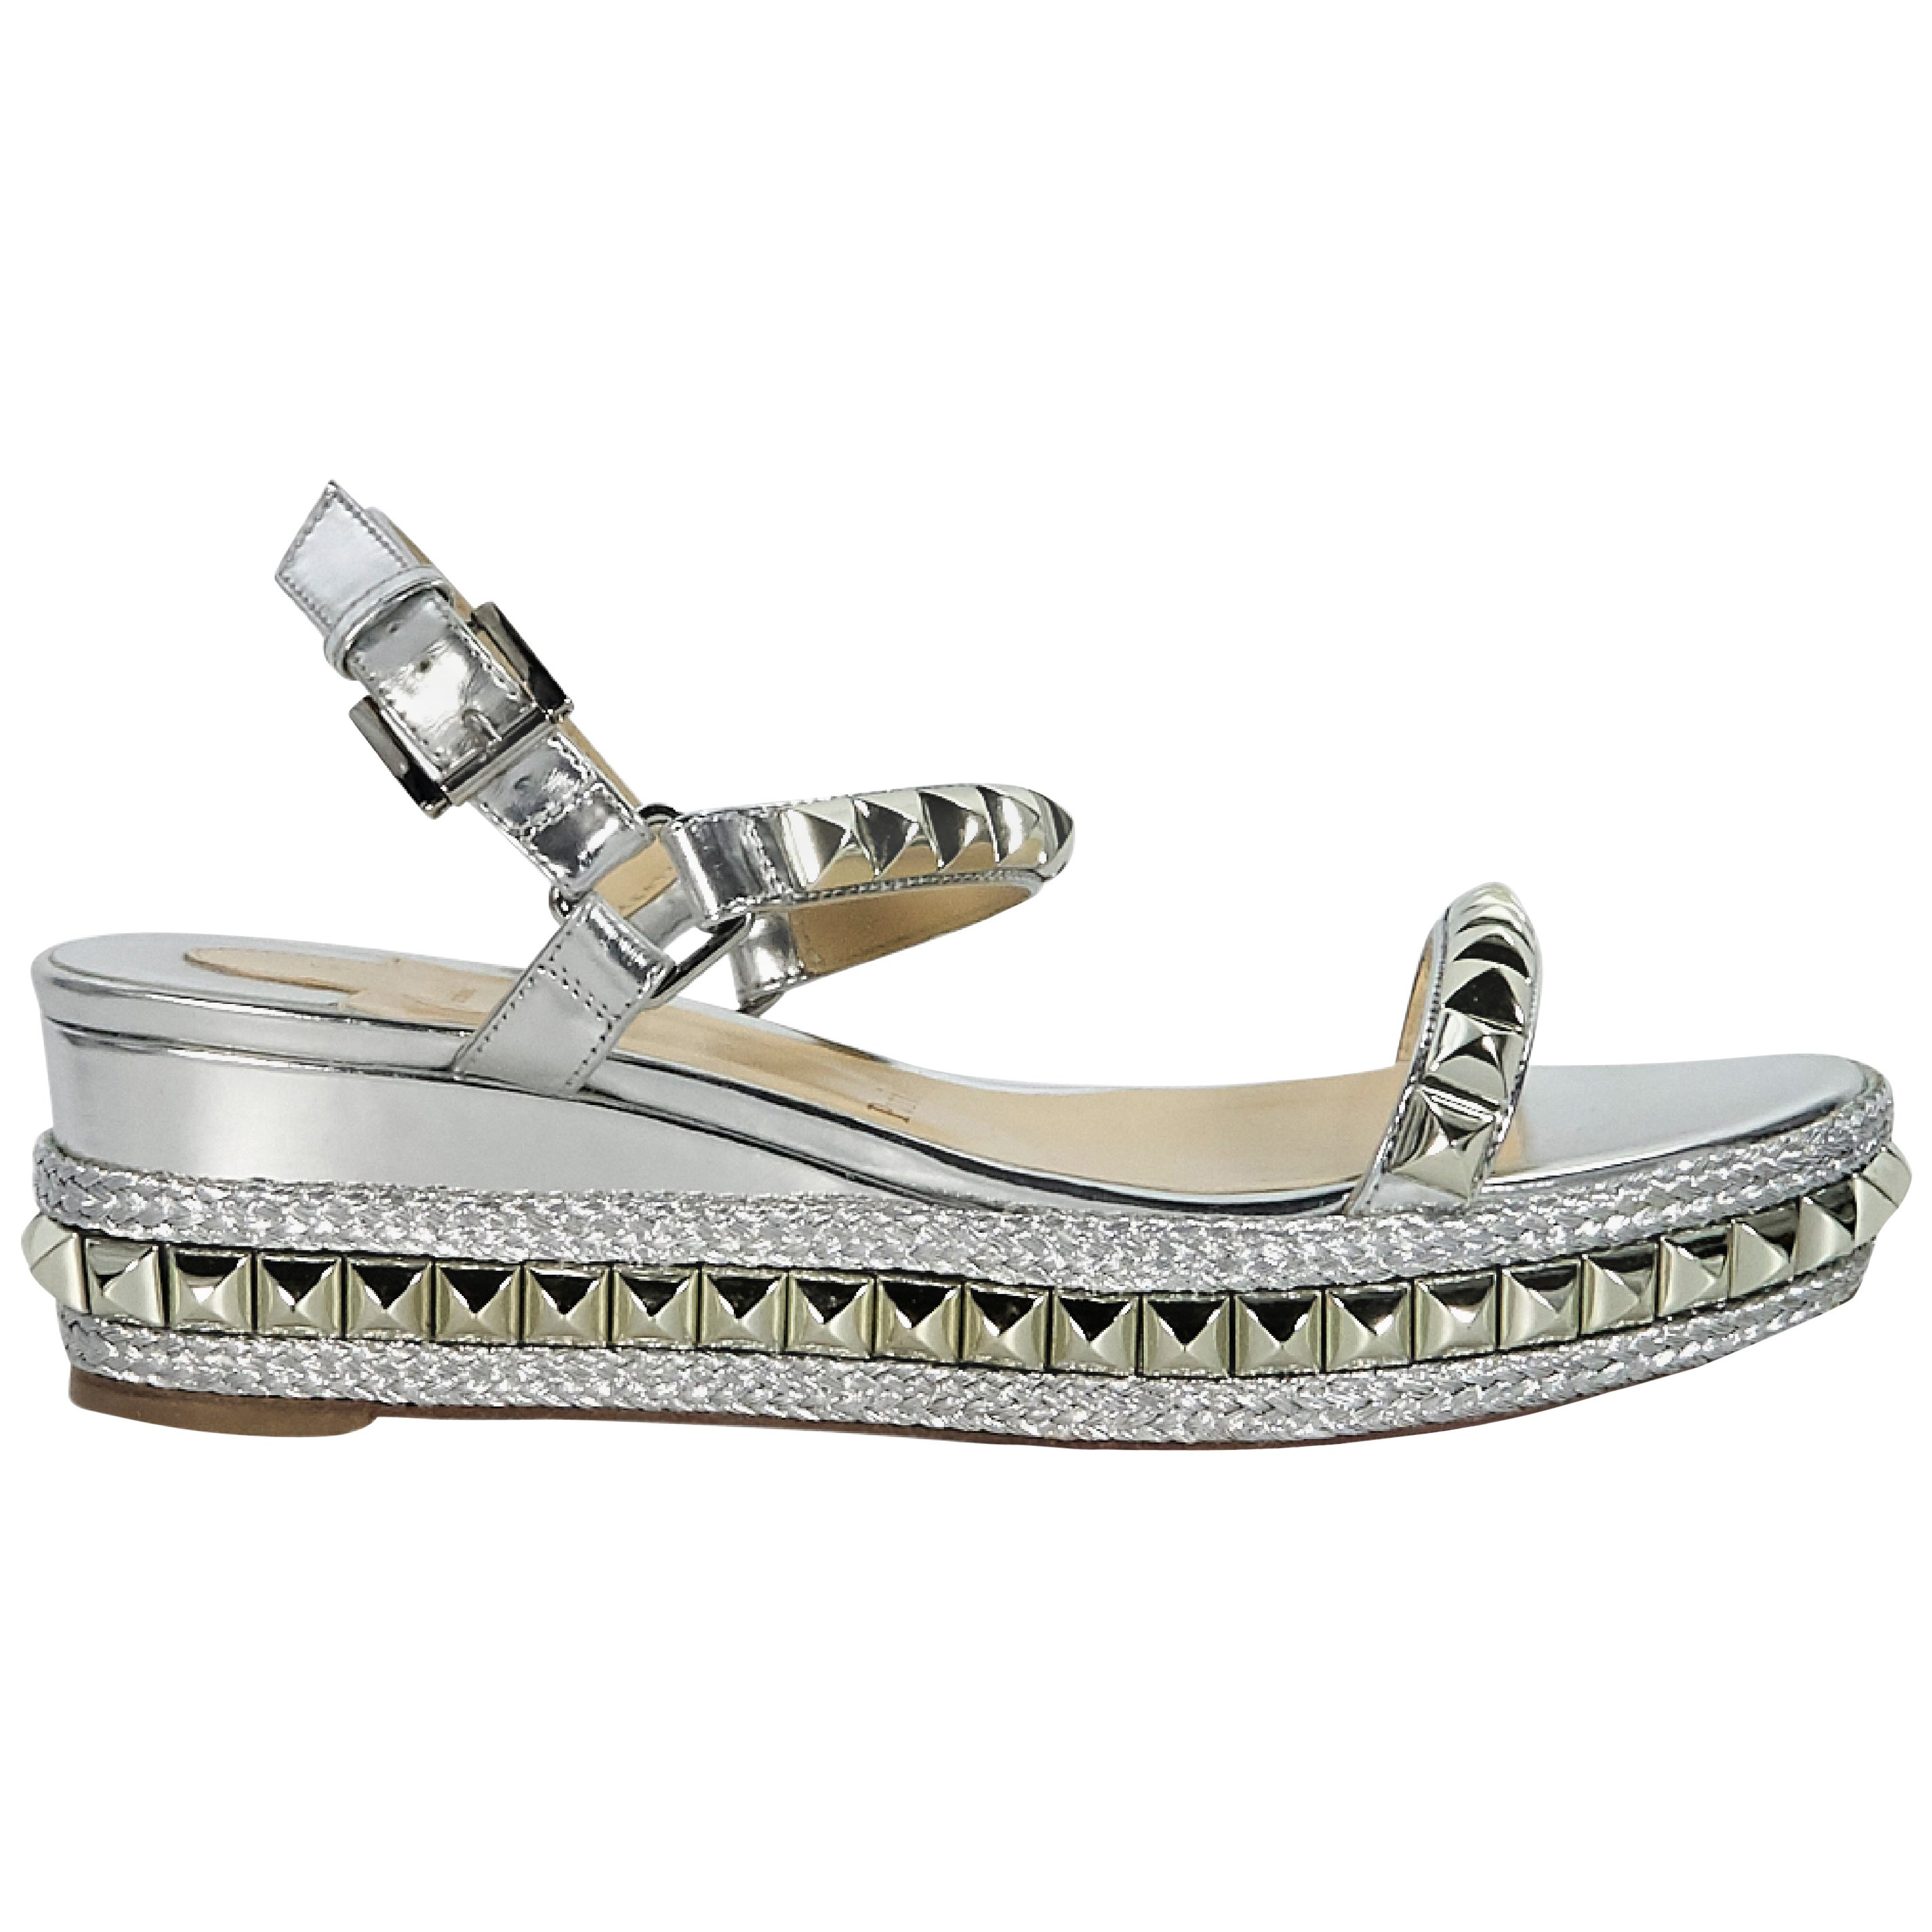 f02a0622577 Christian Louboutin Silver Studded Cataclou 60 Sandals For Sale at 1stdibs